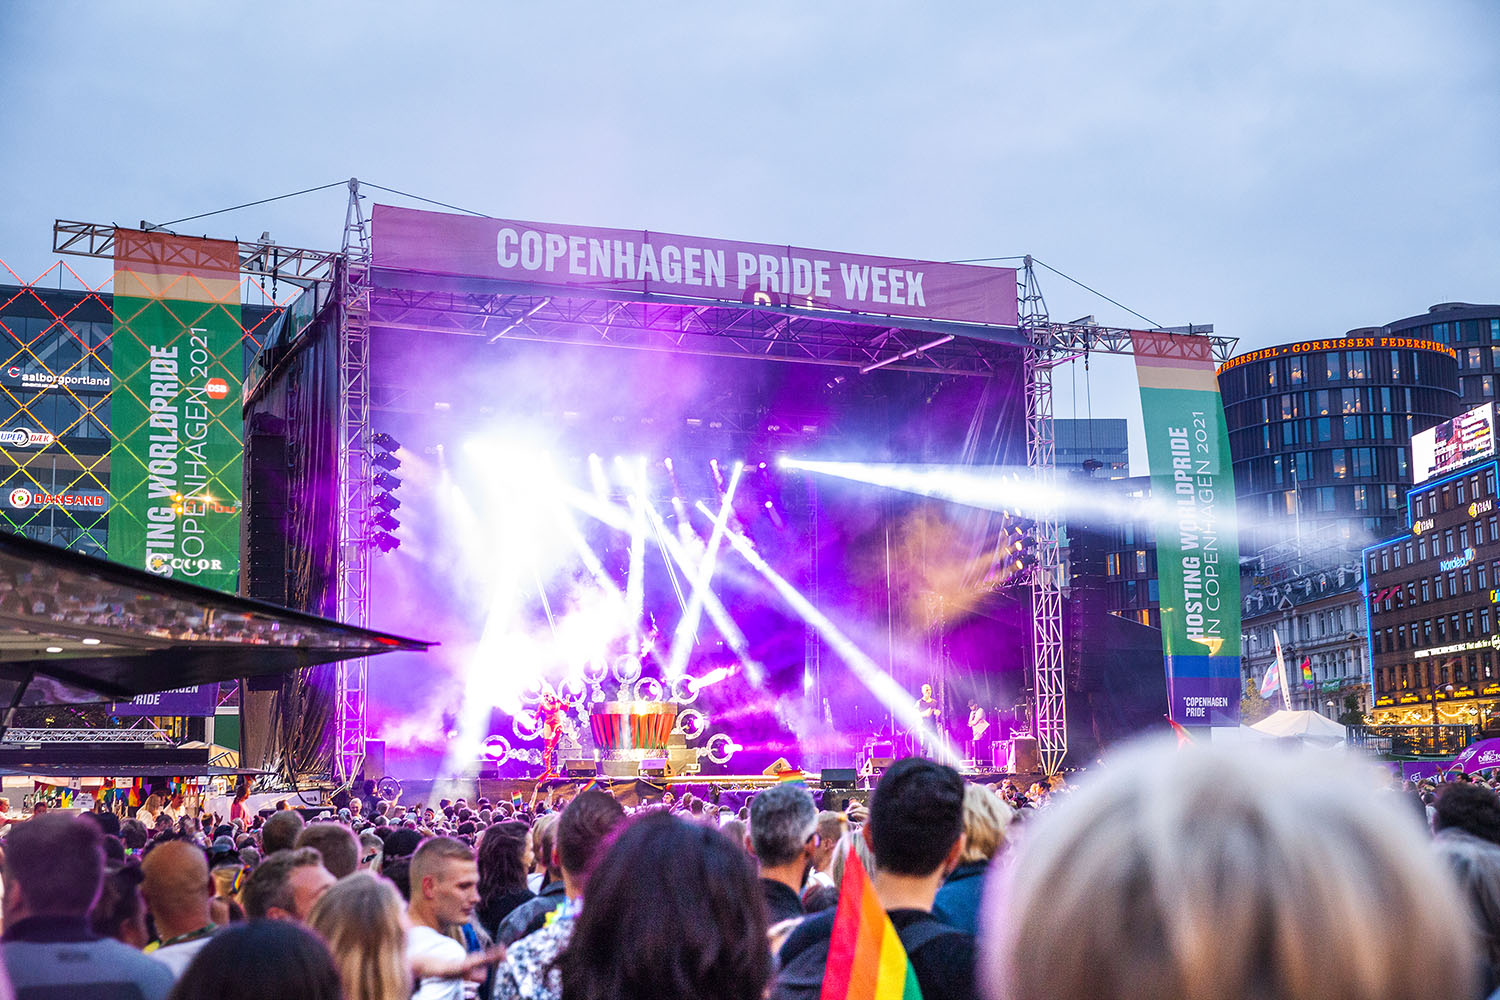 CphPride2018_HelenaLundquist_18